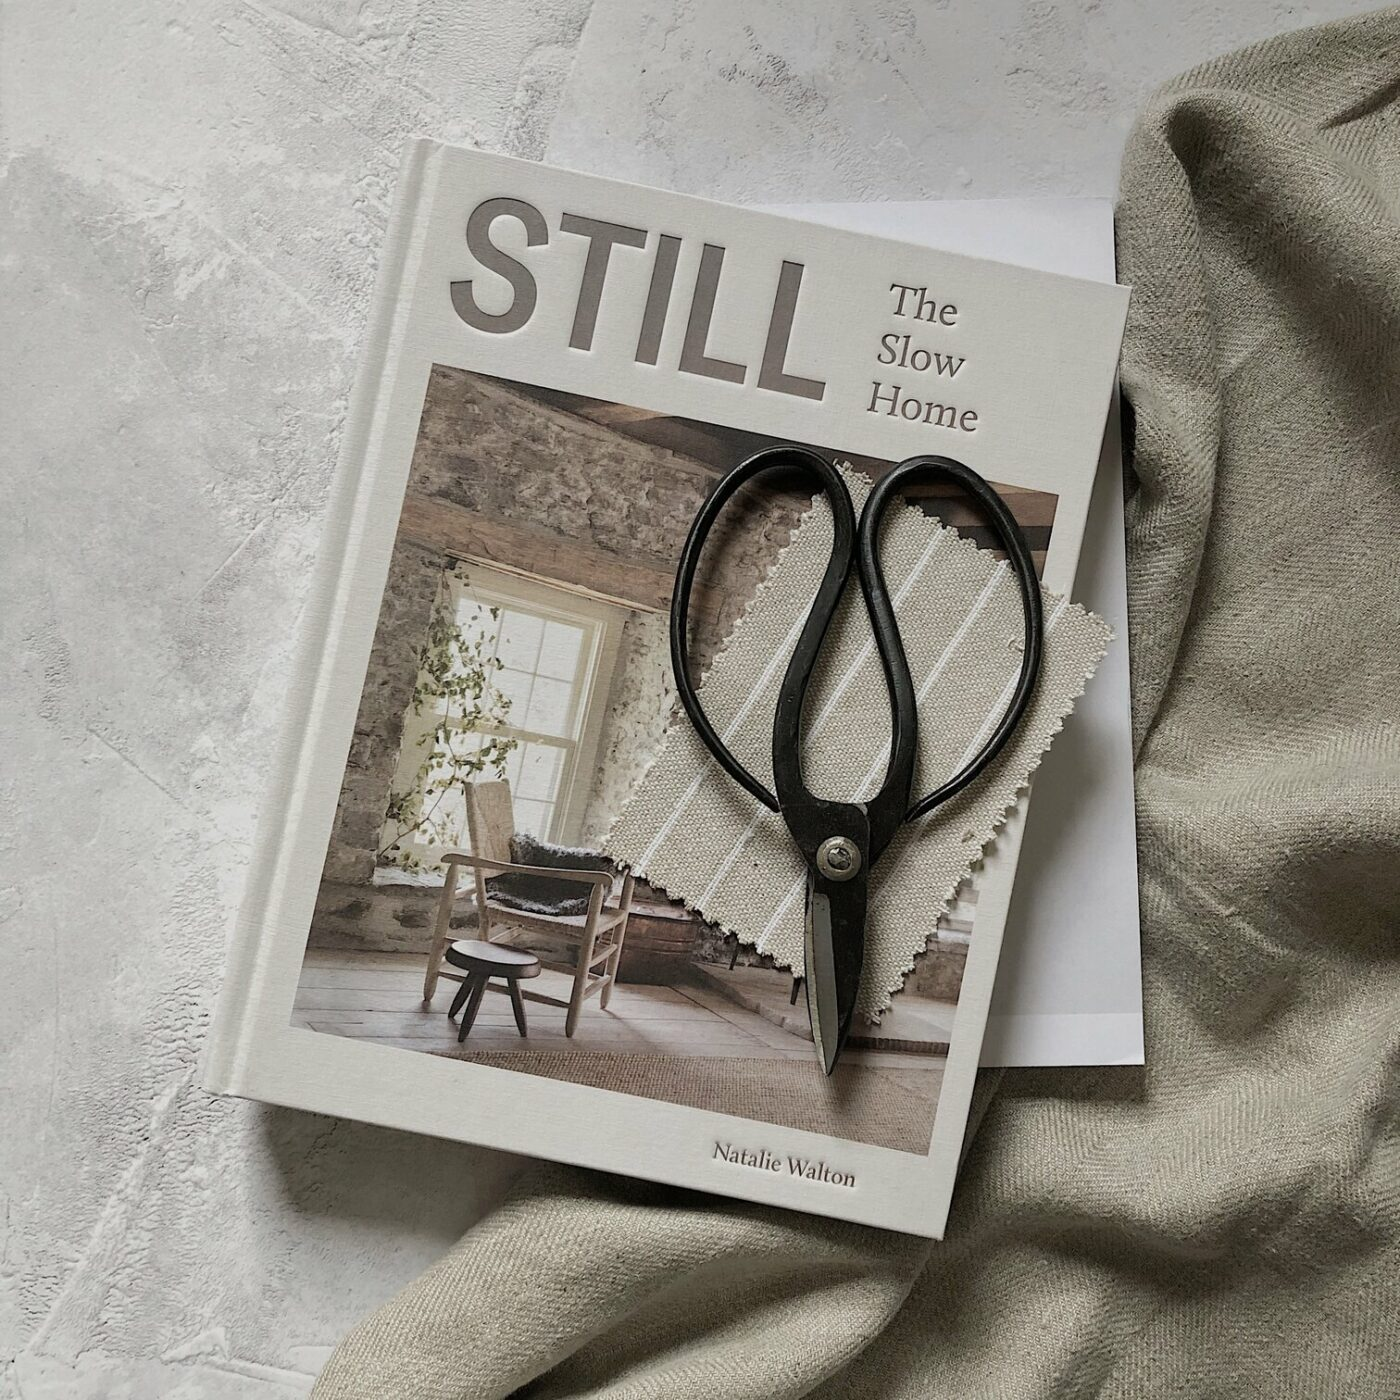 Our Favourite Coffee Table Books on Slow Interior Design